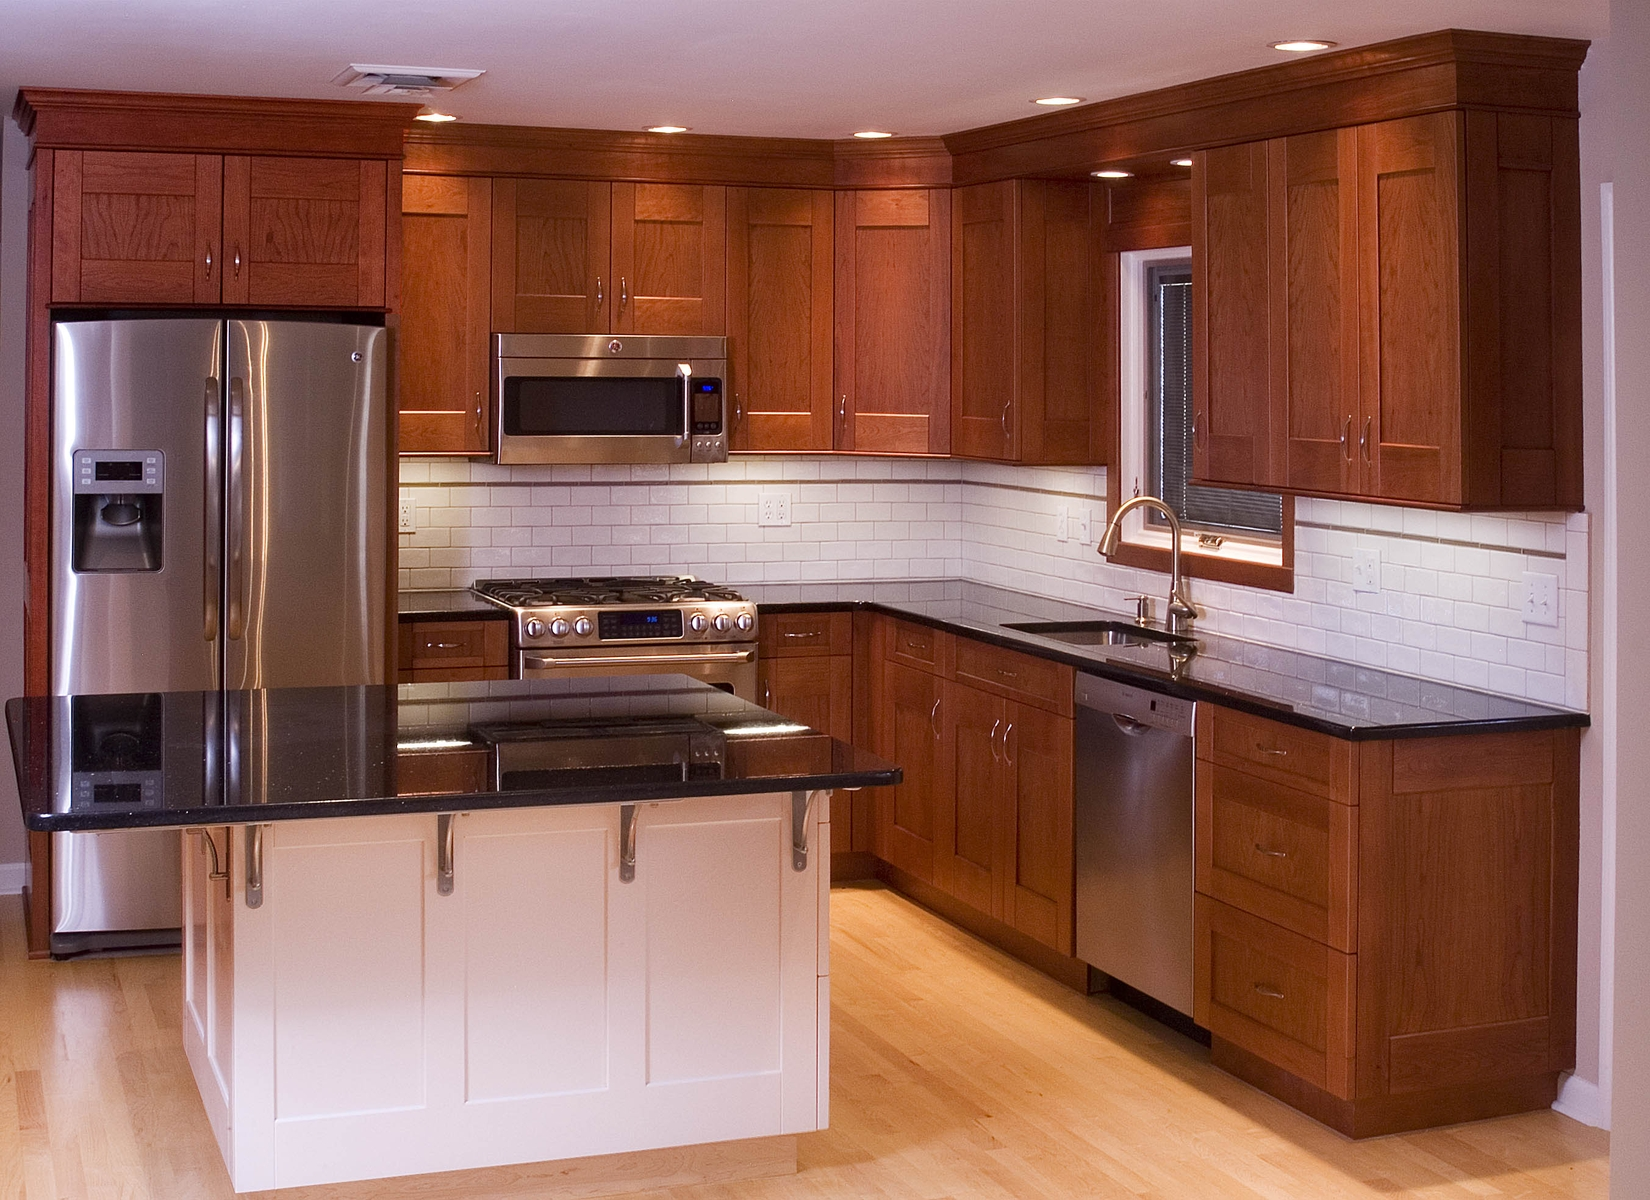 Mix And Match Of Great Kitchen Cabinet Hardware Ideas For